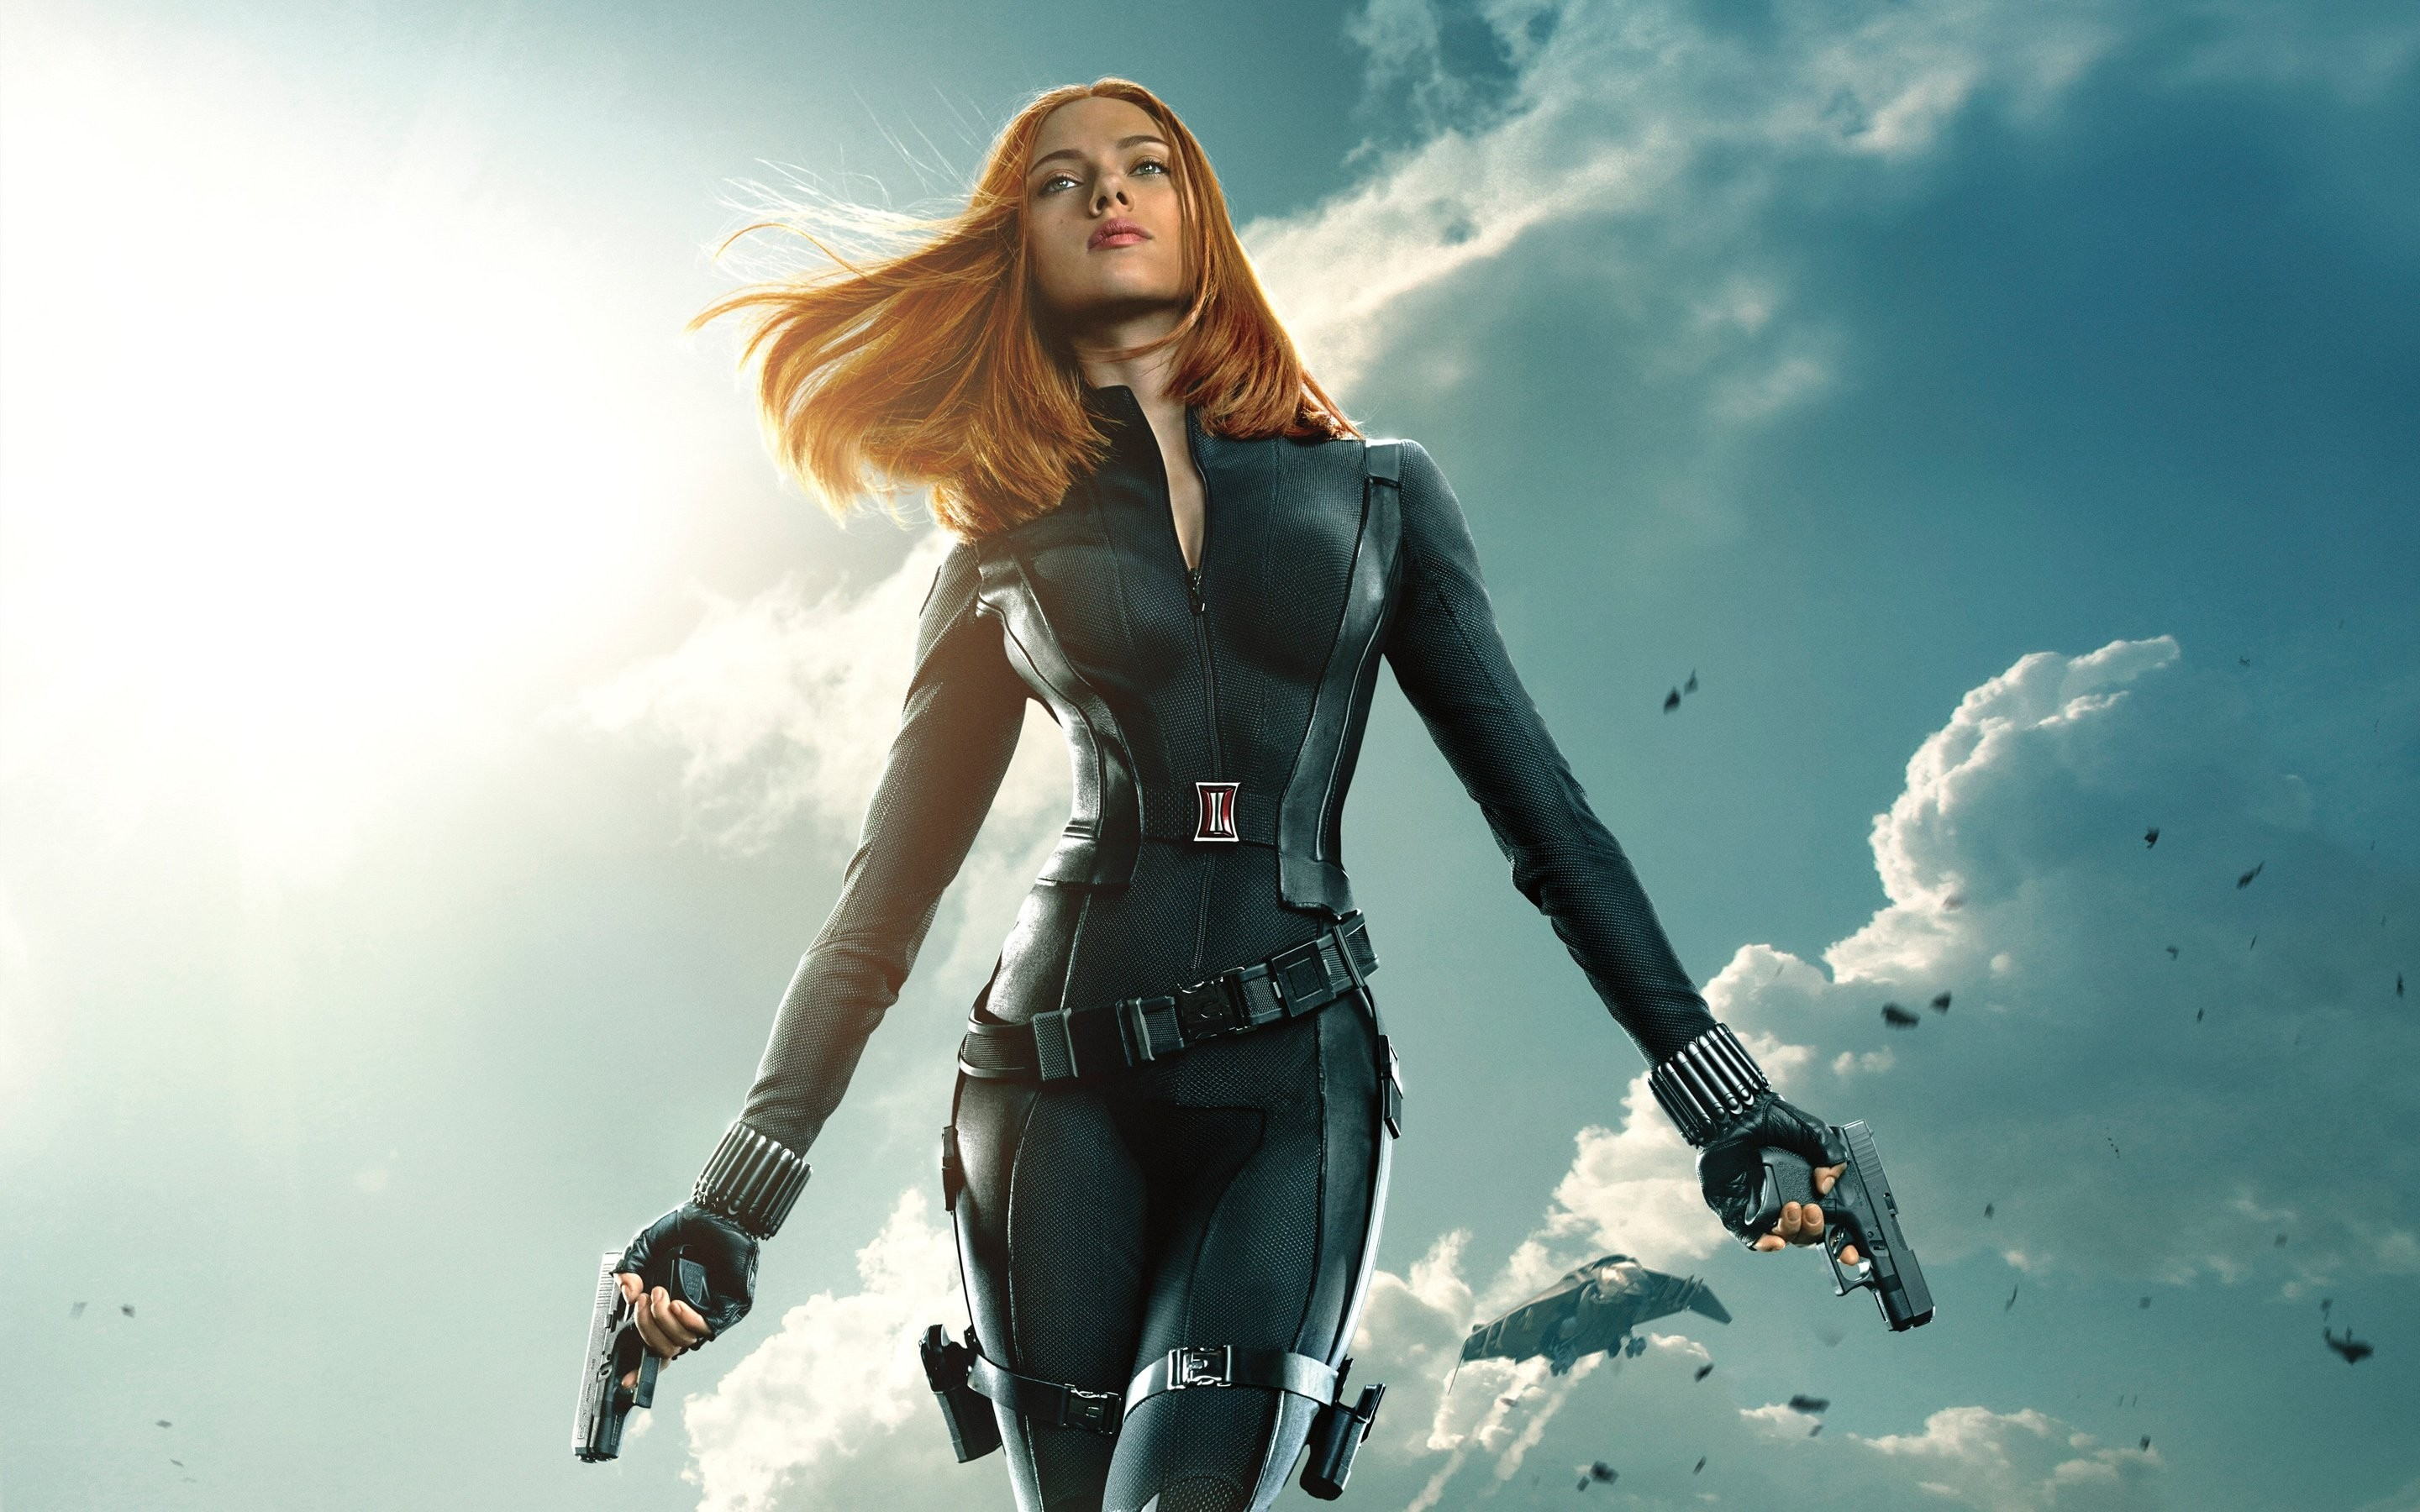 2880x1800 Scarlett Johansson, Black Widow, Captain America: The Winter Soldier